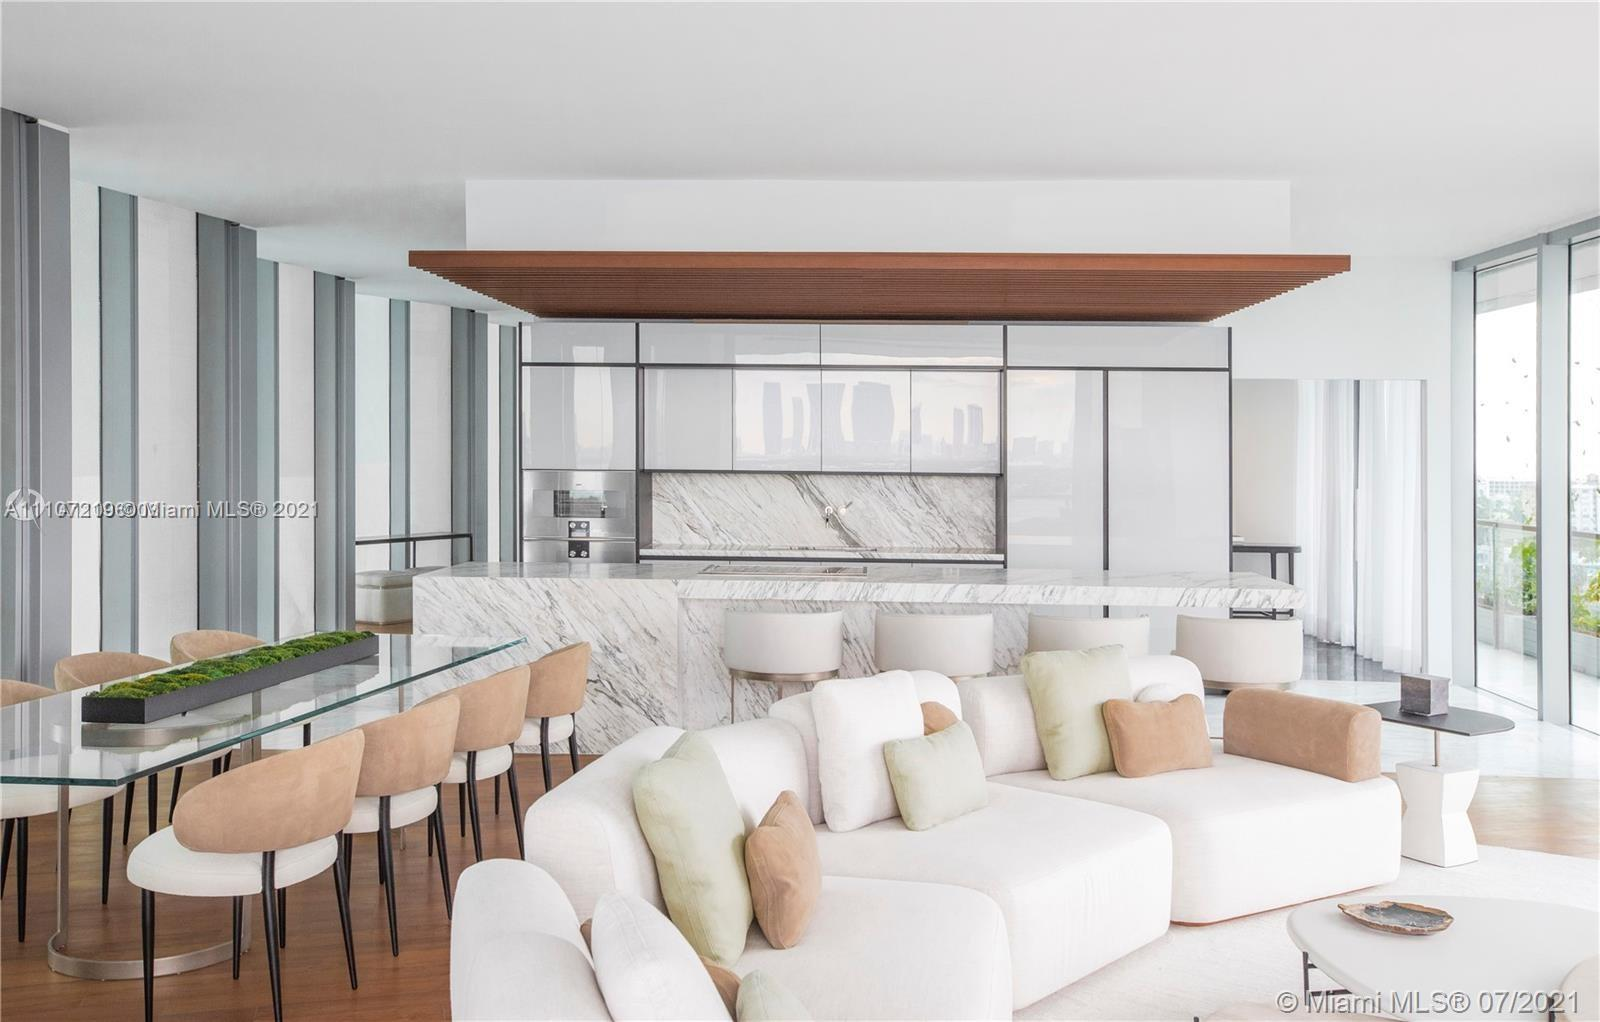 Composed of 59 individually designed waterfront residences around a glittering lagoon, Monad Terrace